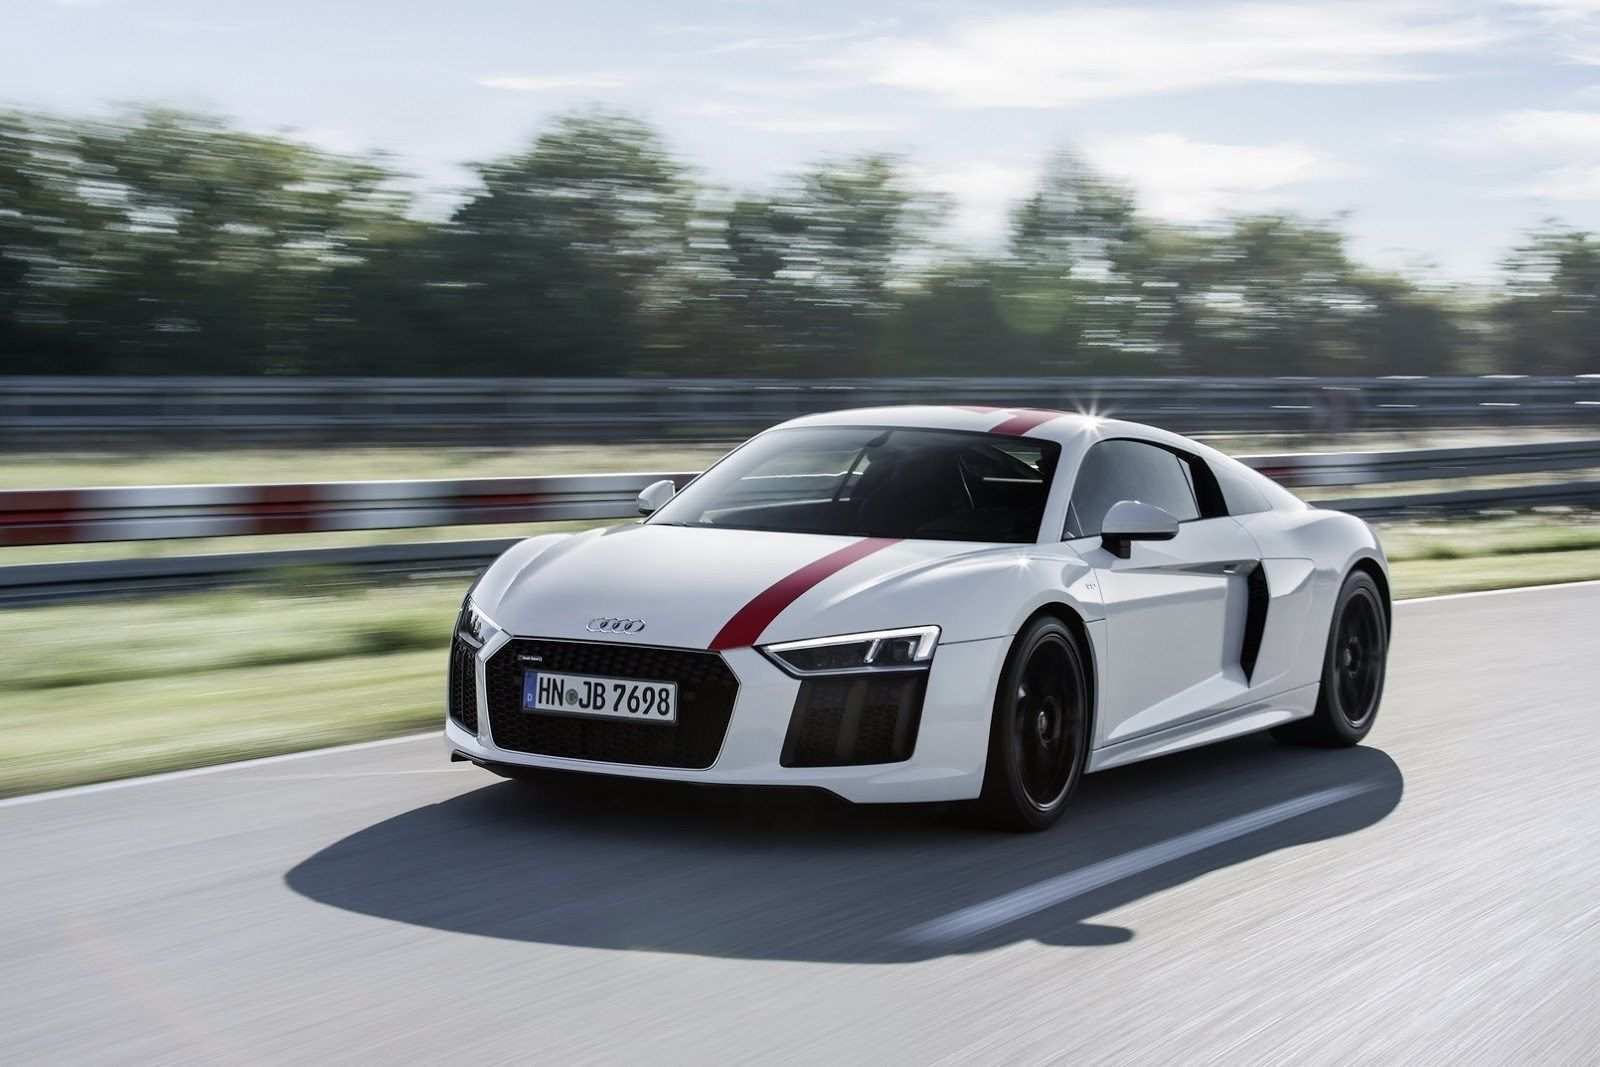 34 New 2020 Audi R8 LMXs Pictures